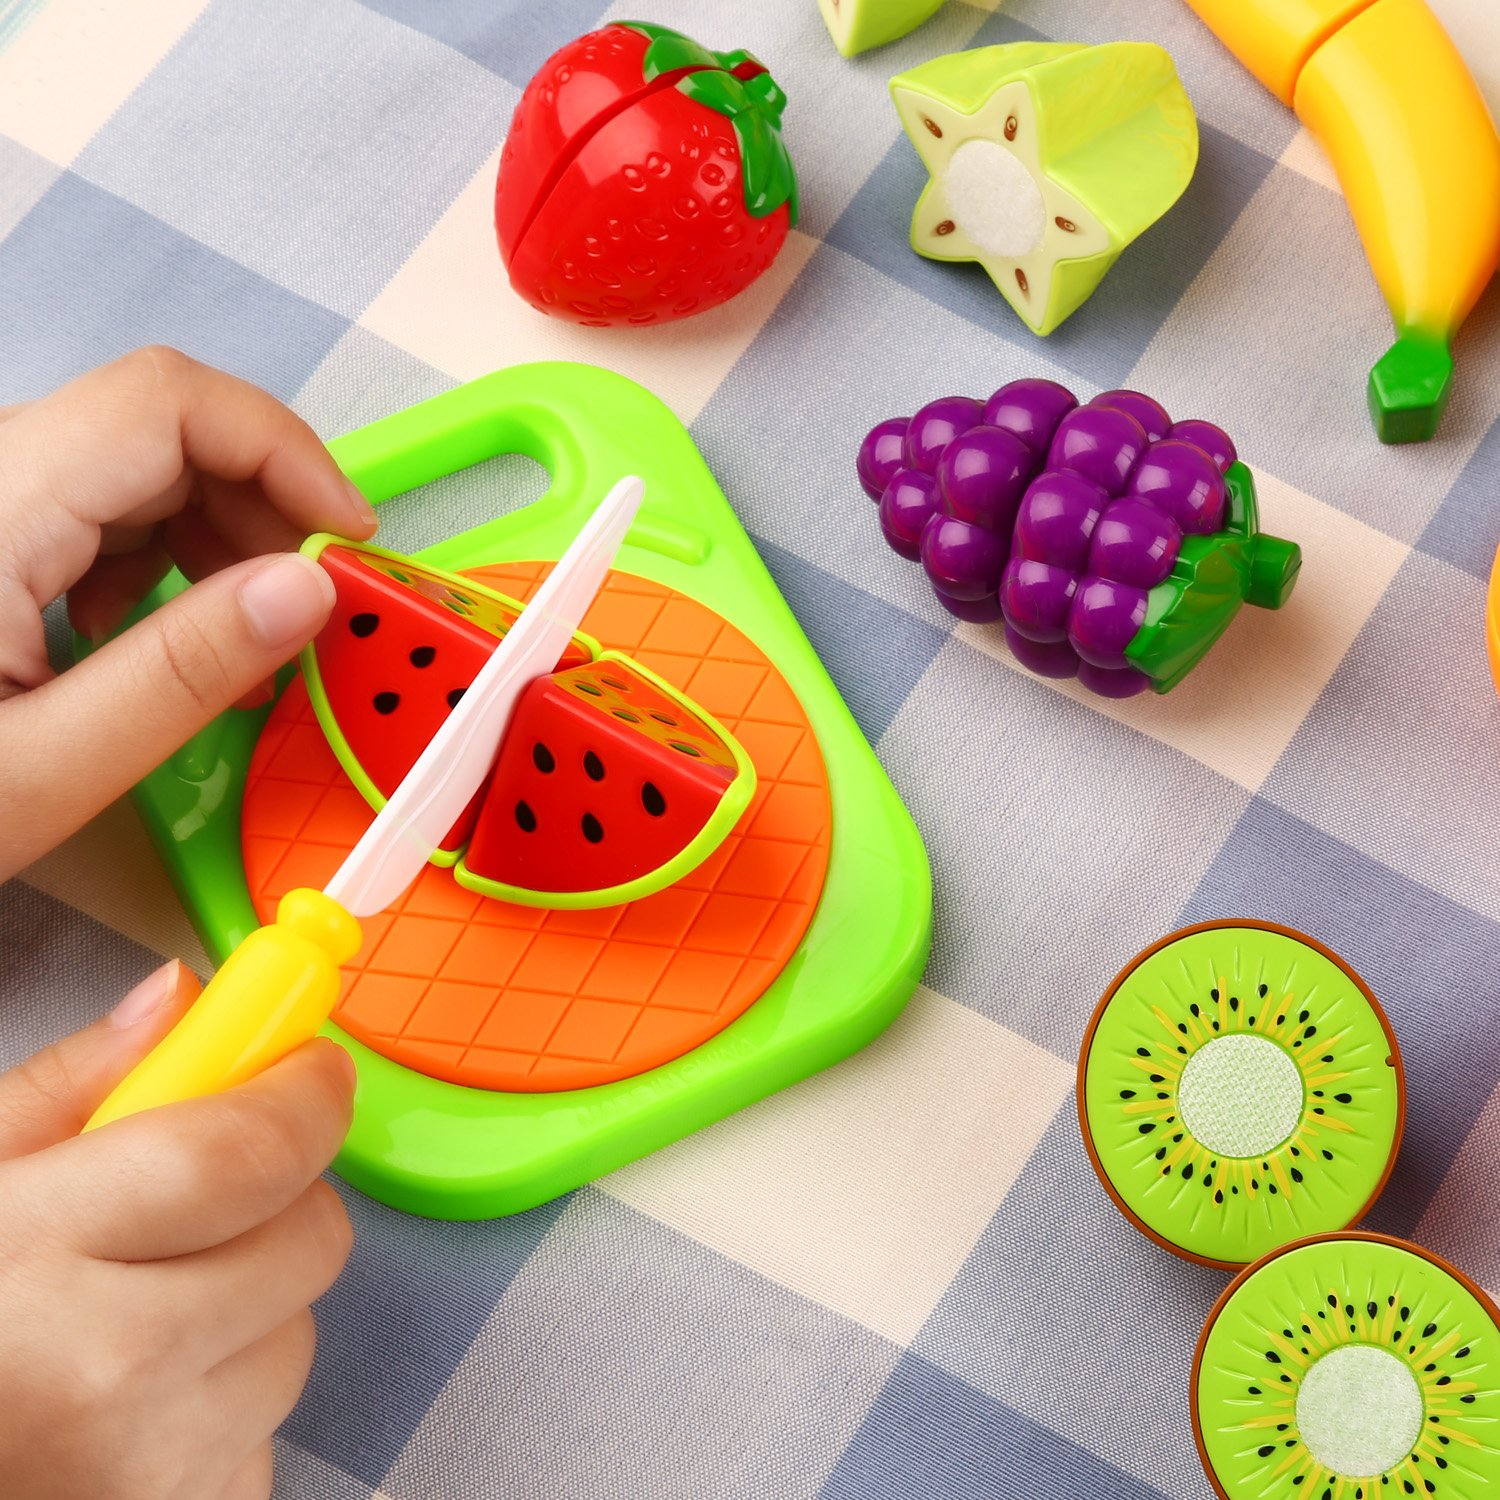 Play Food Cutting Fruit and Vegetable Toys Pretend Role Play Game with Plastic Velcro Fruit Cake Chopping Board Set and Apron Preschool Learning for Children Kids Toddlers Birthday Gift by Peradix